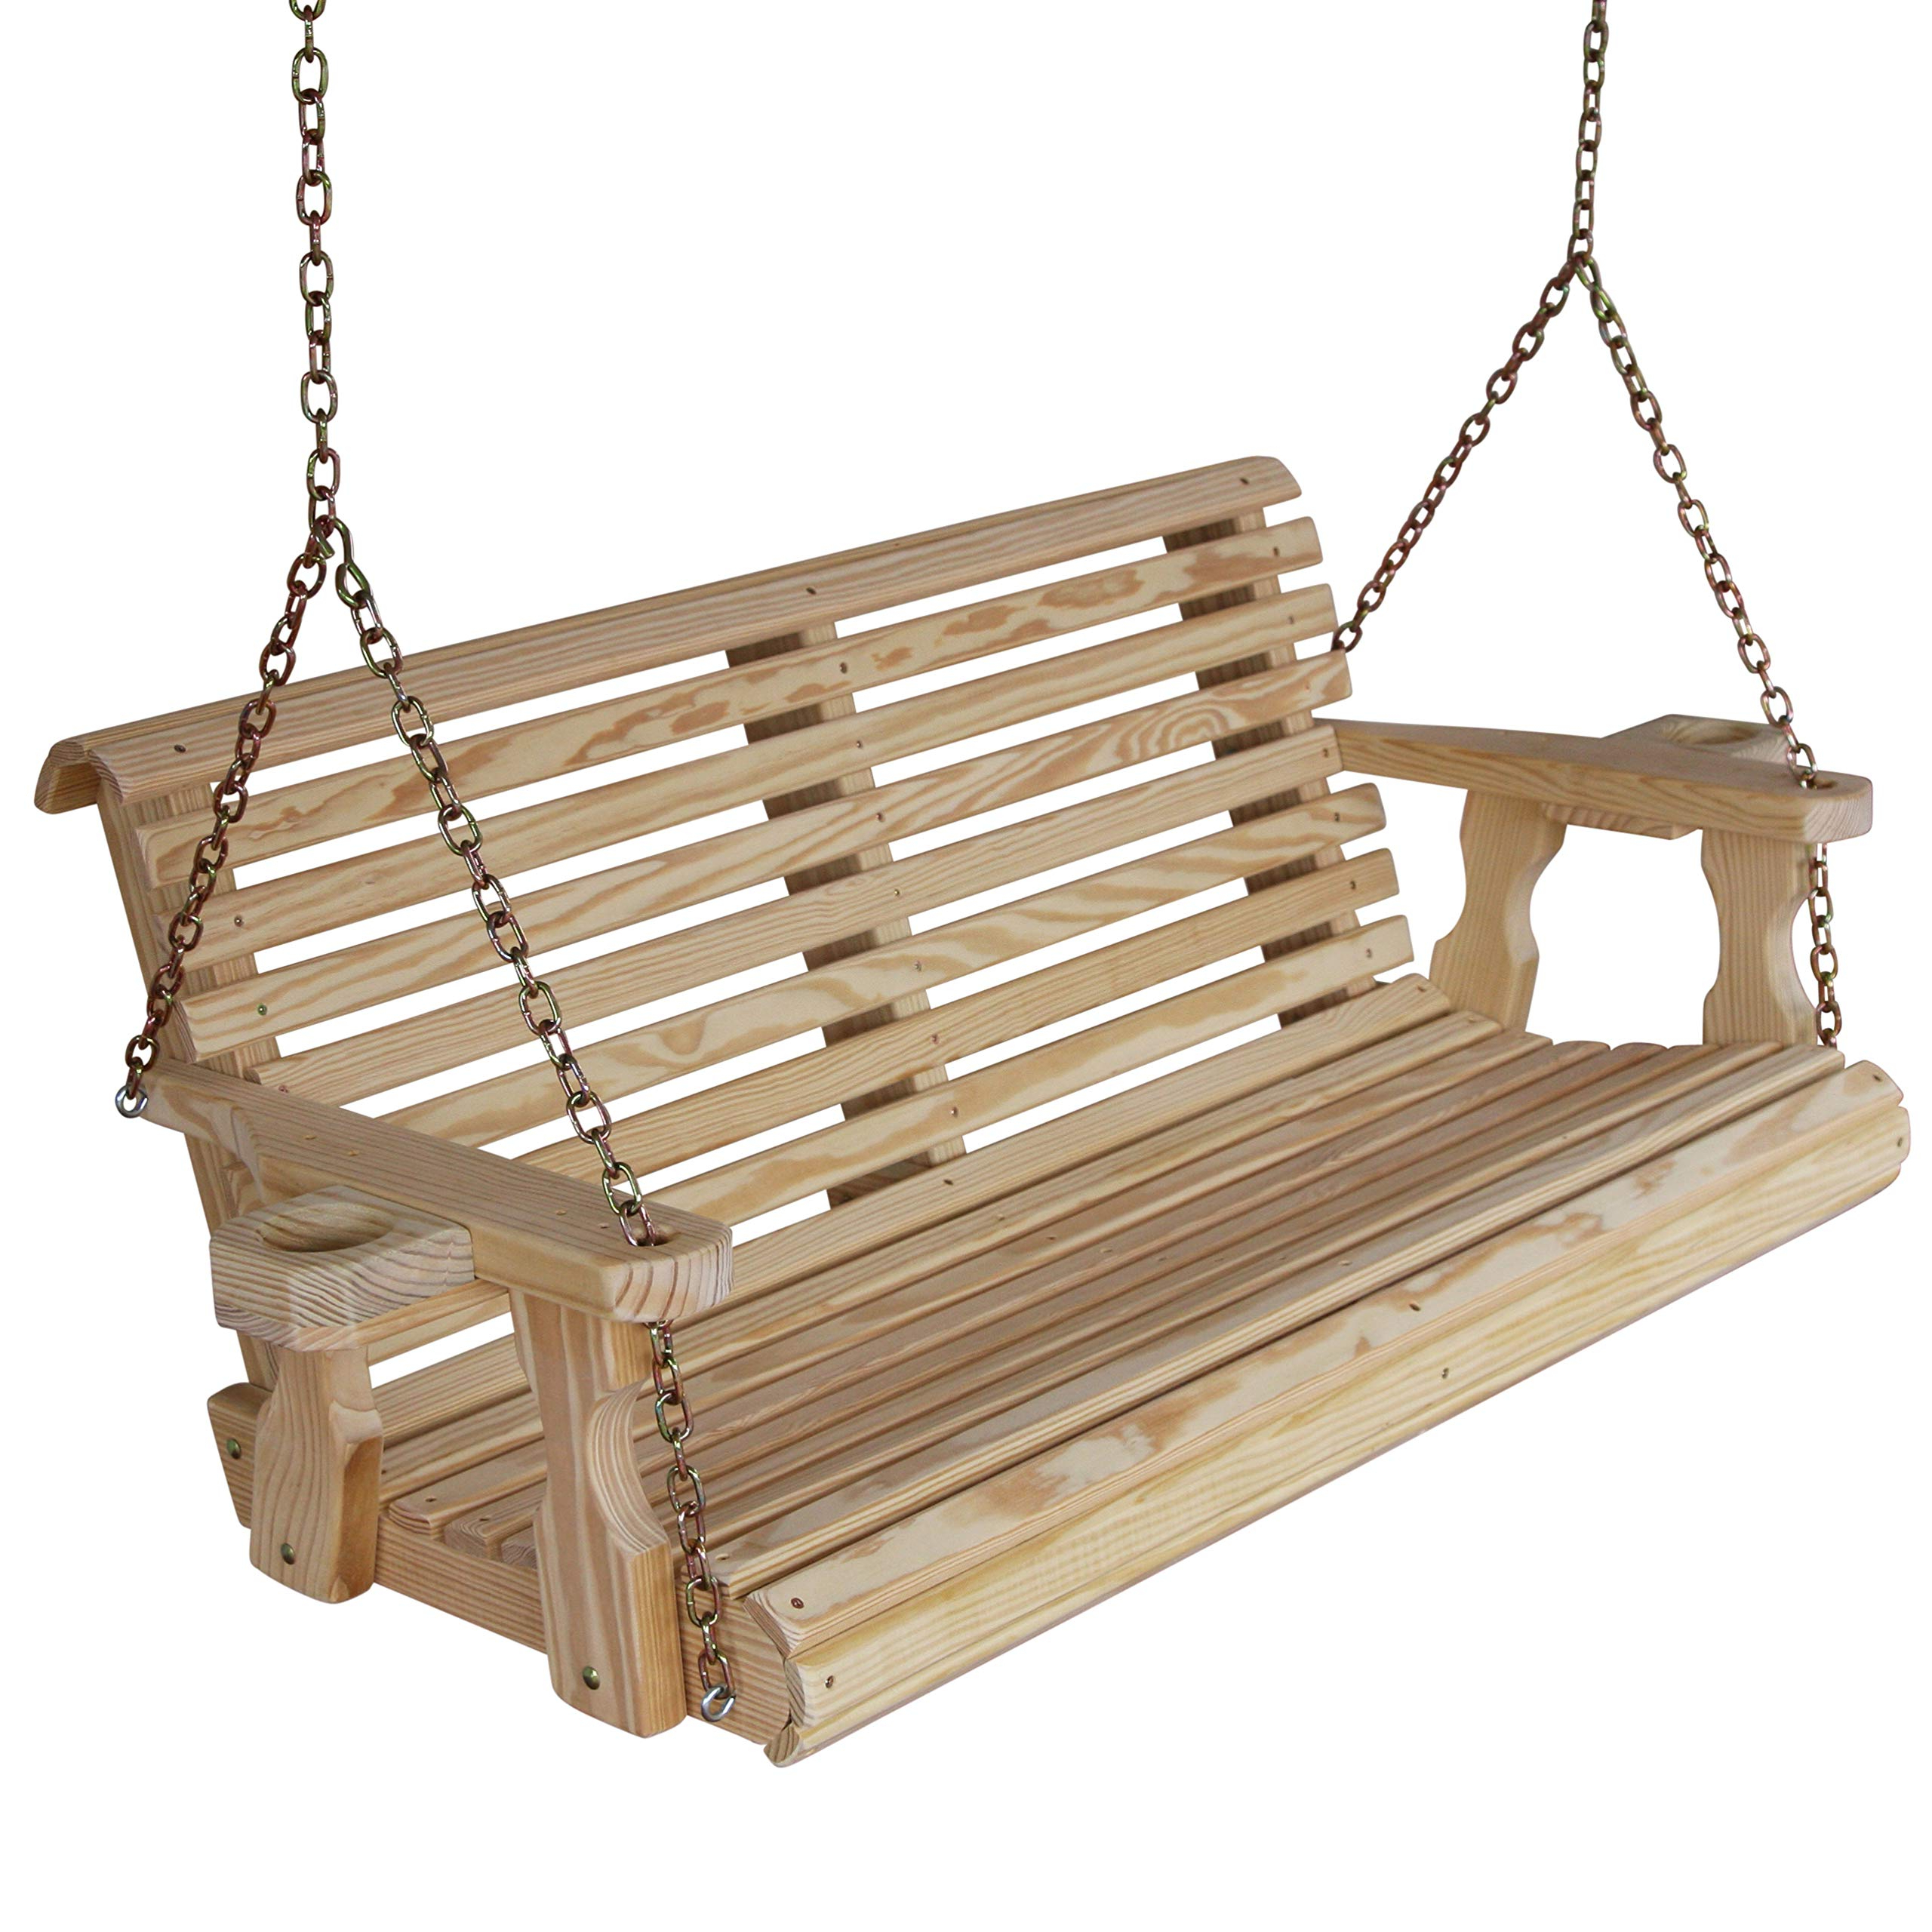 Plain Porch Swings Within 2020 Best Rated In Porch Swings & Helpful Customer Reviews (View 11 of 30)